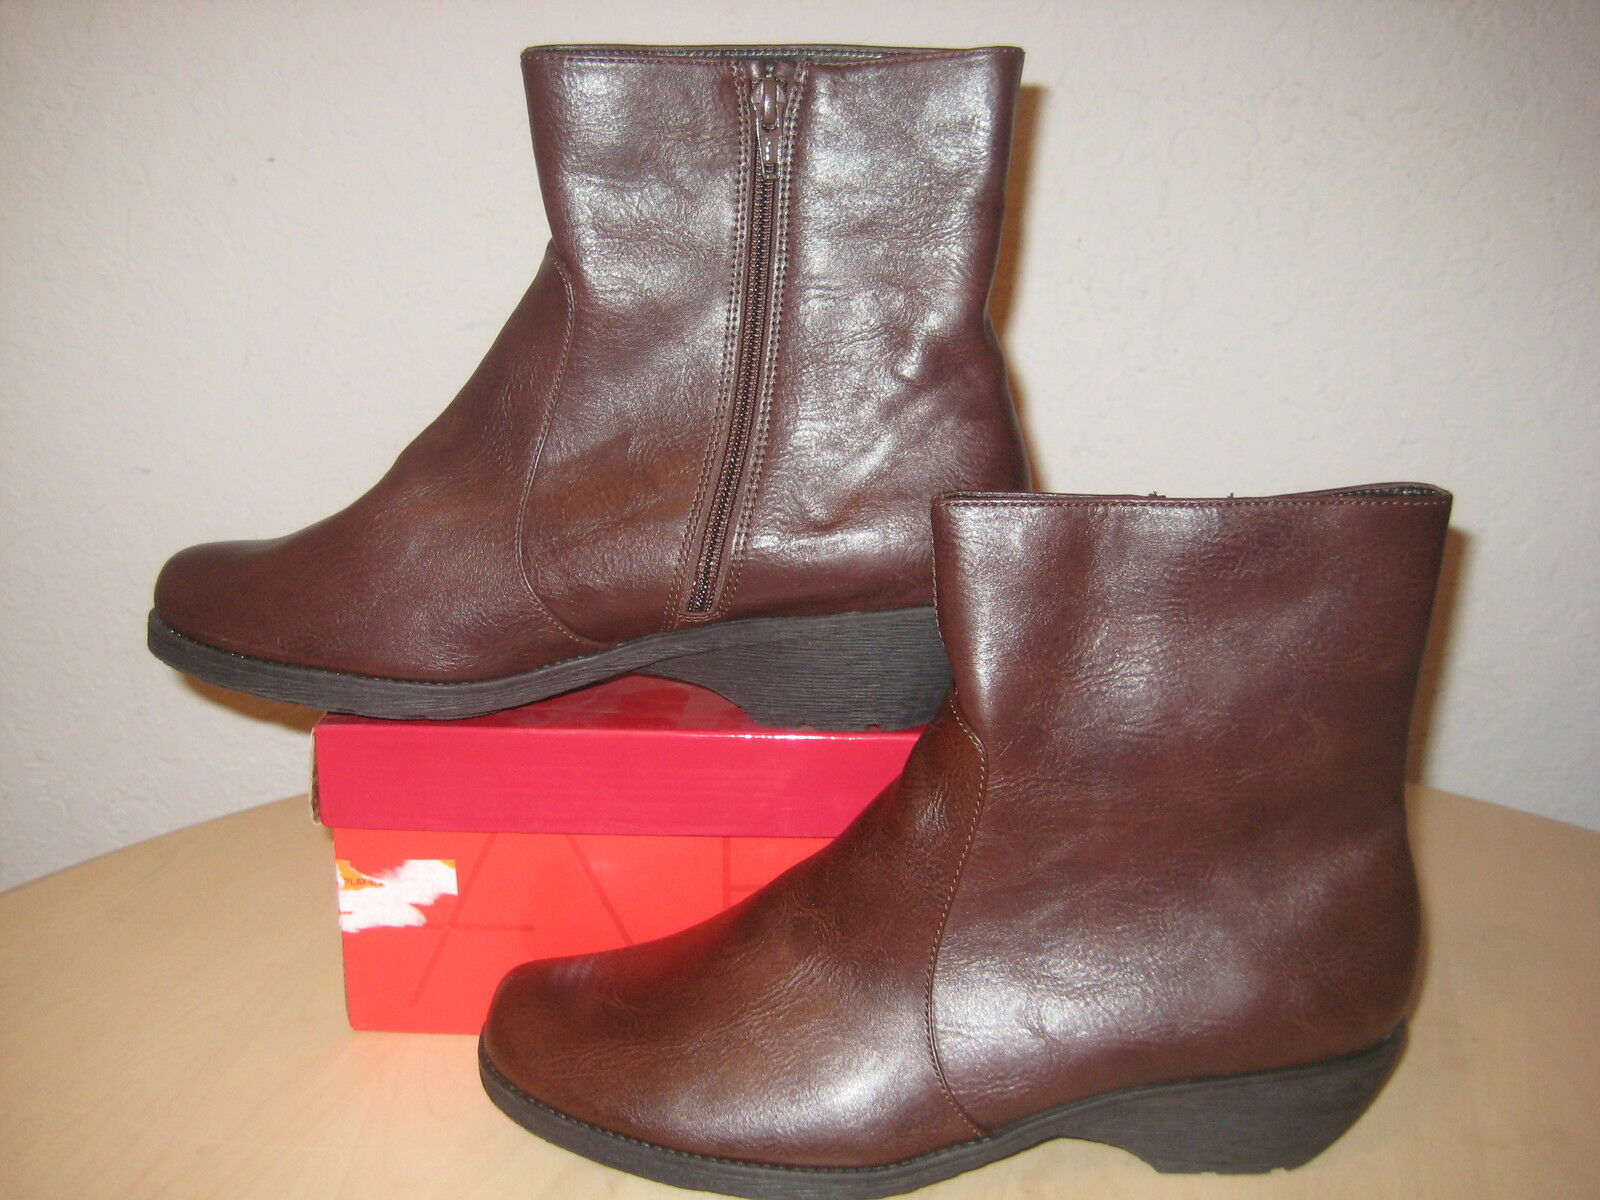 Aerosoles Ankle Size 10 M SPEARTINT Dark Brown Ankle Aerosoles Stivali Donna New Shoes ee4a14